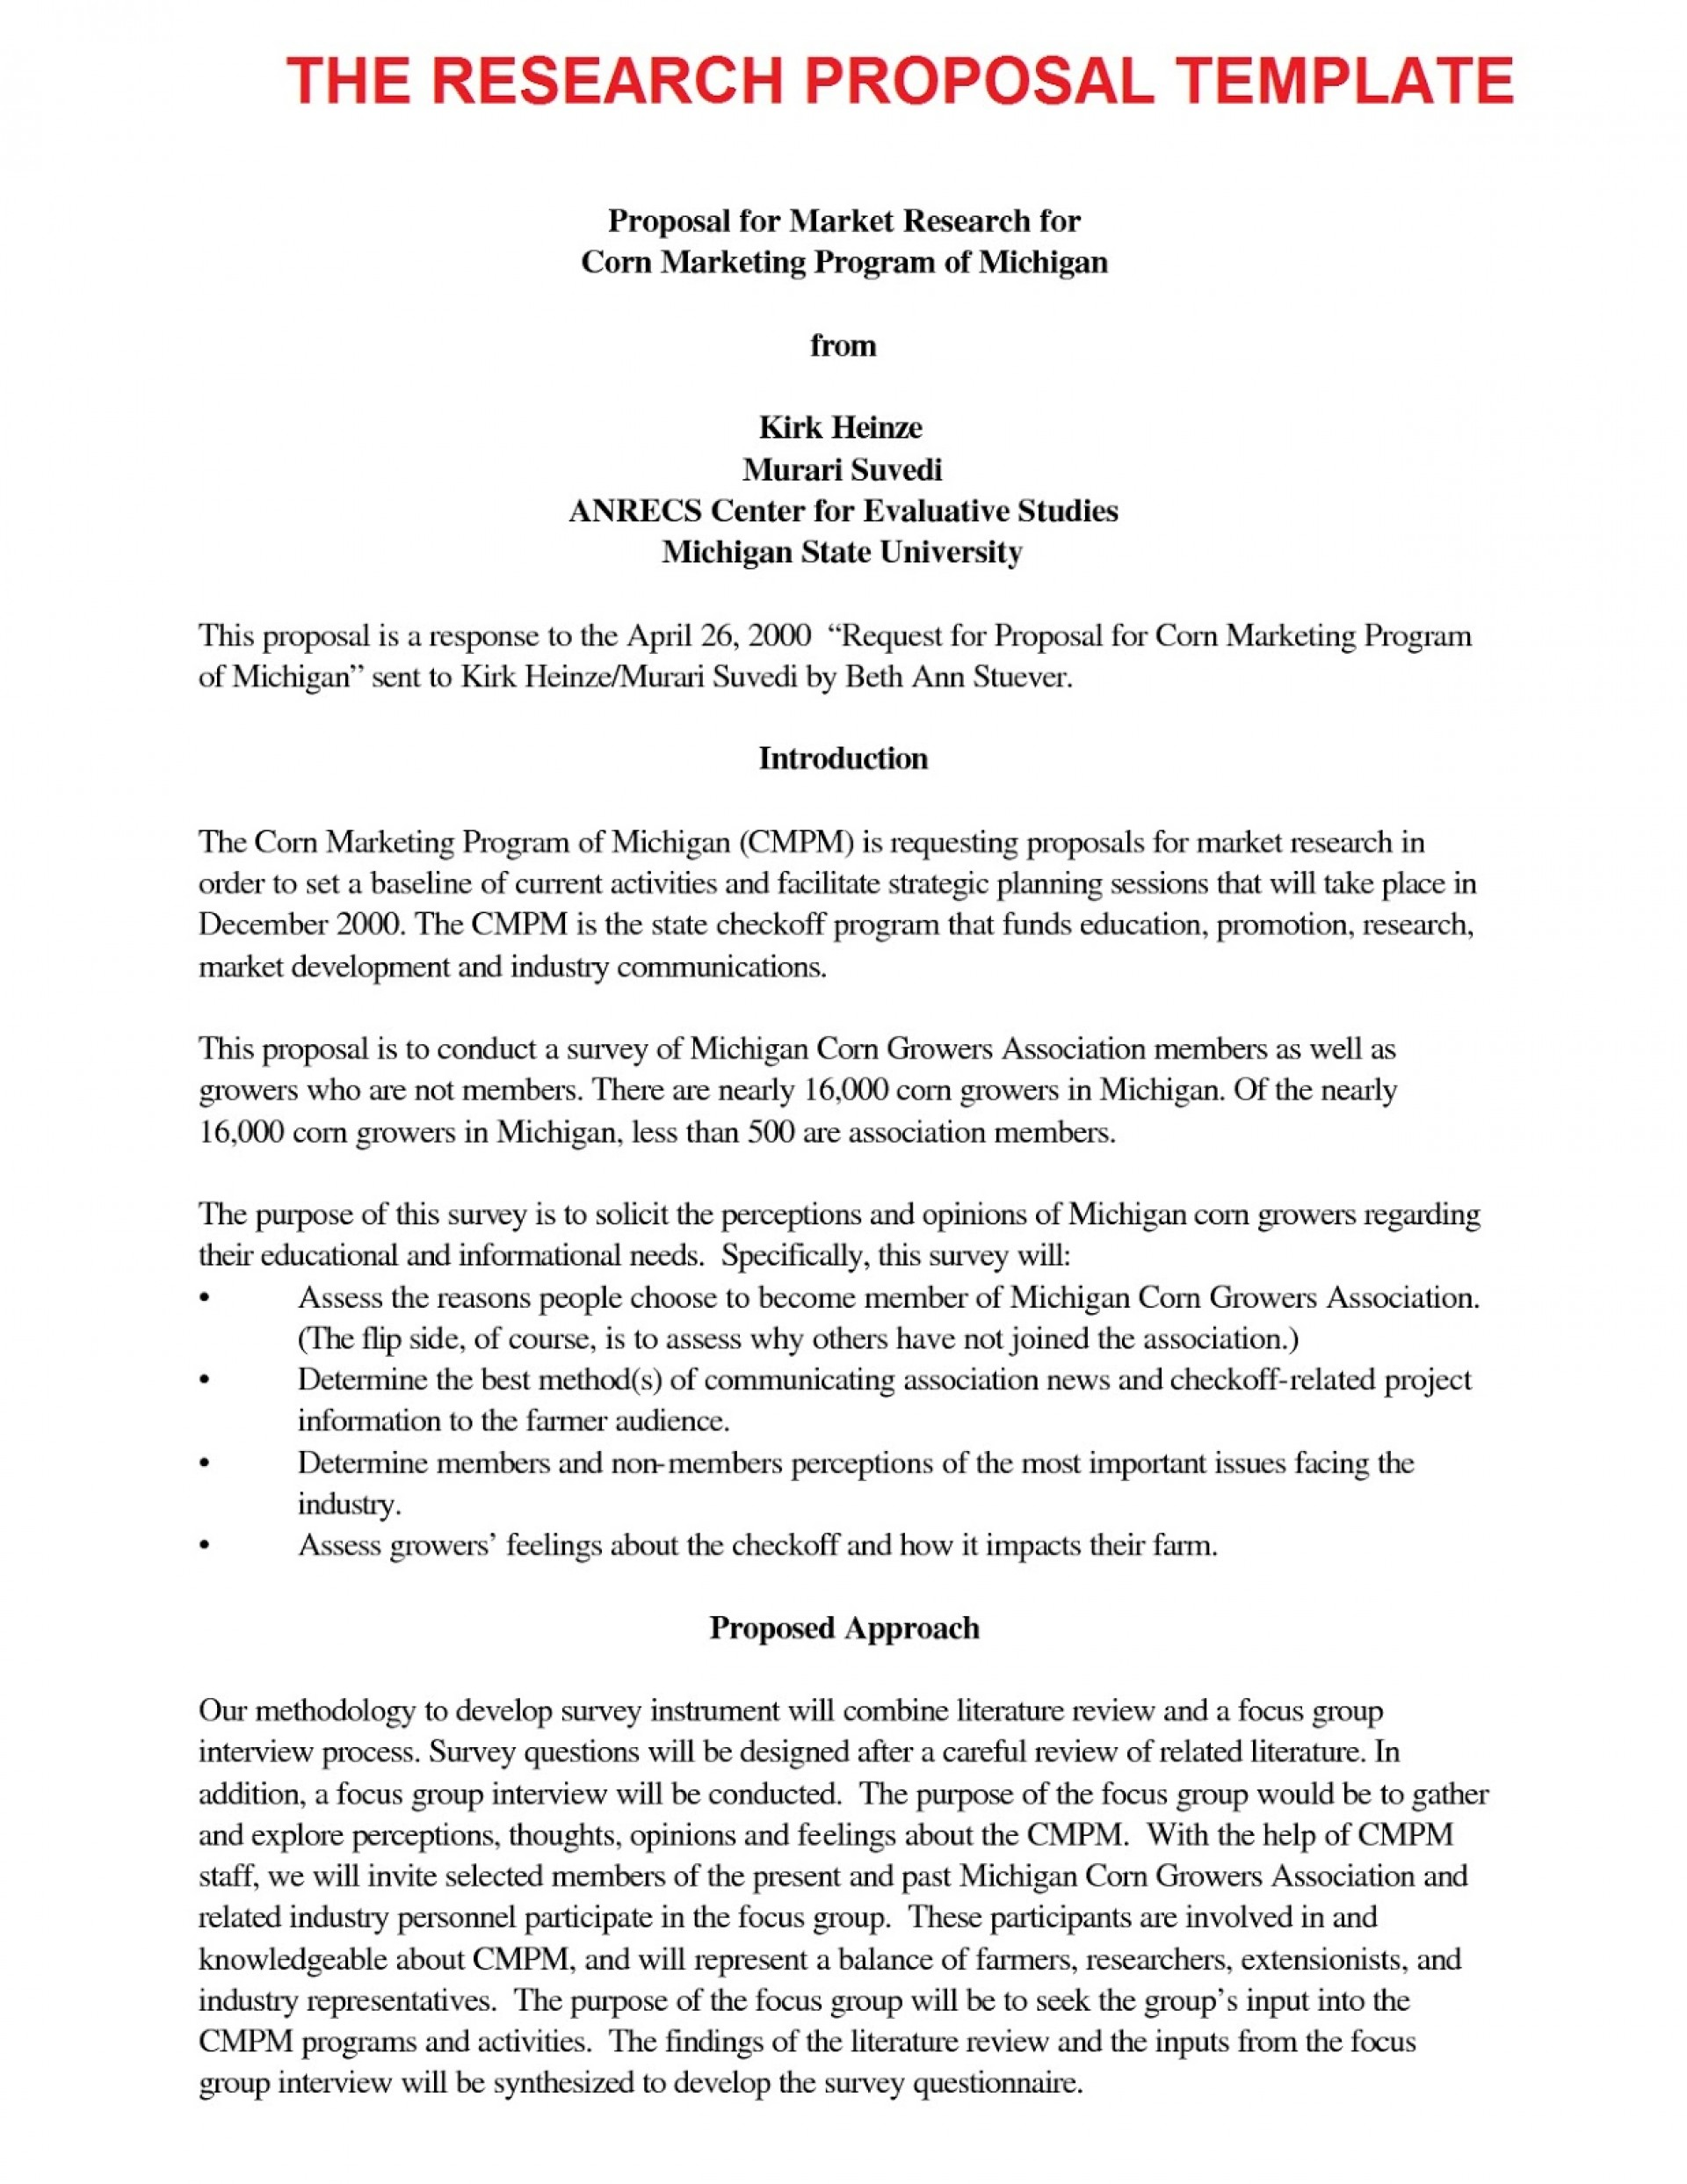 007 Research20proposal20template Research Paper Introduction Of Best A Apa For An Format 1920